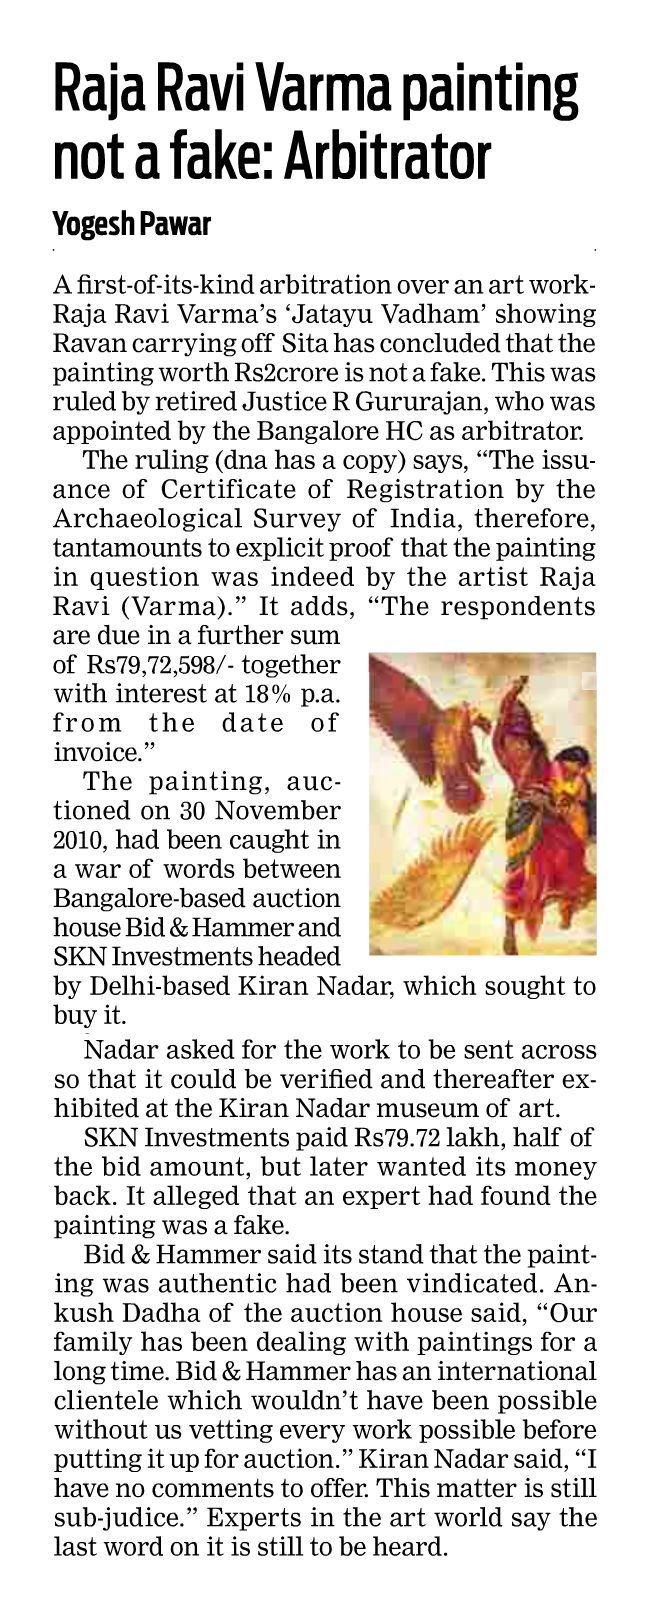 High Court of Karnataka appointed arbitrator rules in favour of Bid & Hammer's experts in Ravi Varma painting recovery suit against Kiran Nadar's fake claims; Sreekumar Menon & Priya Khanna's report quashed for defects, DNA 17th Dec 2014